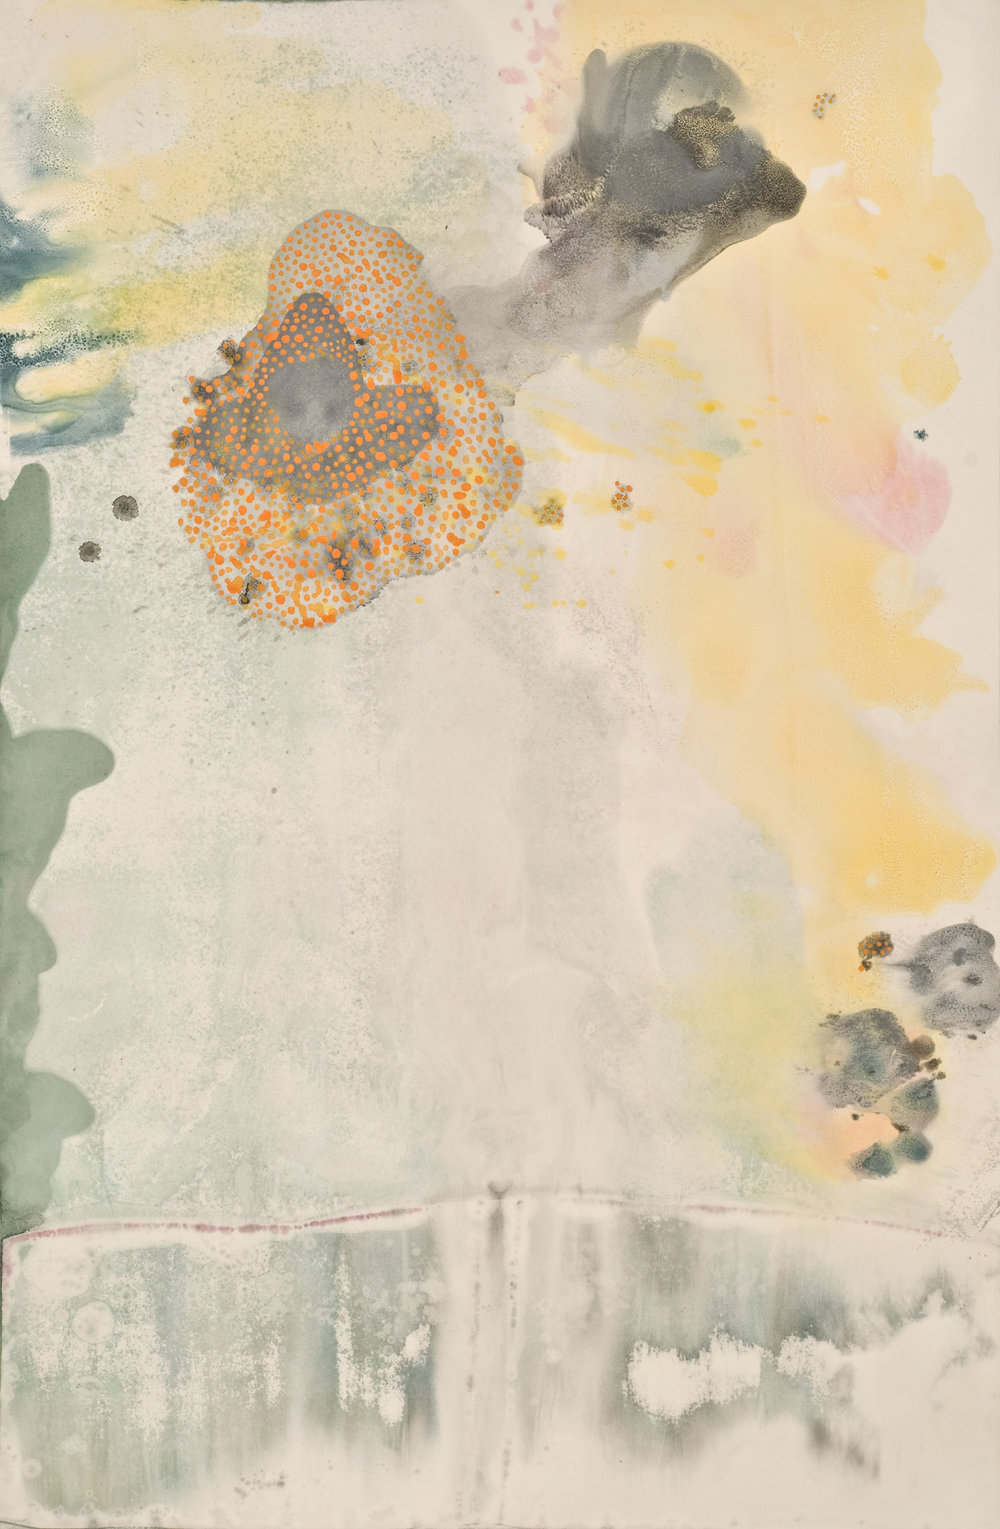 Untitled 18 ,2012  oil on paper monoprint, acrylic  60 x 40 inches  Wildwood Press